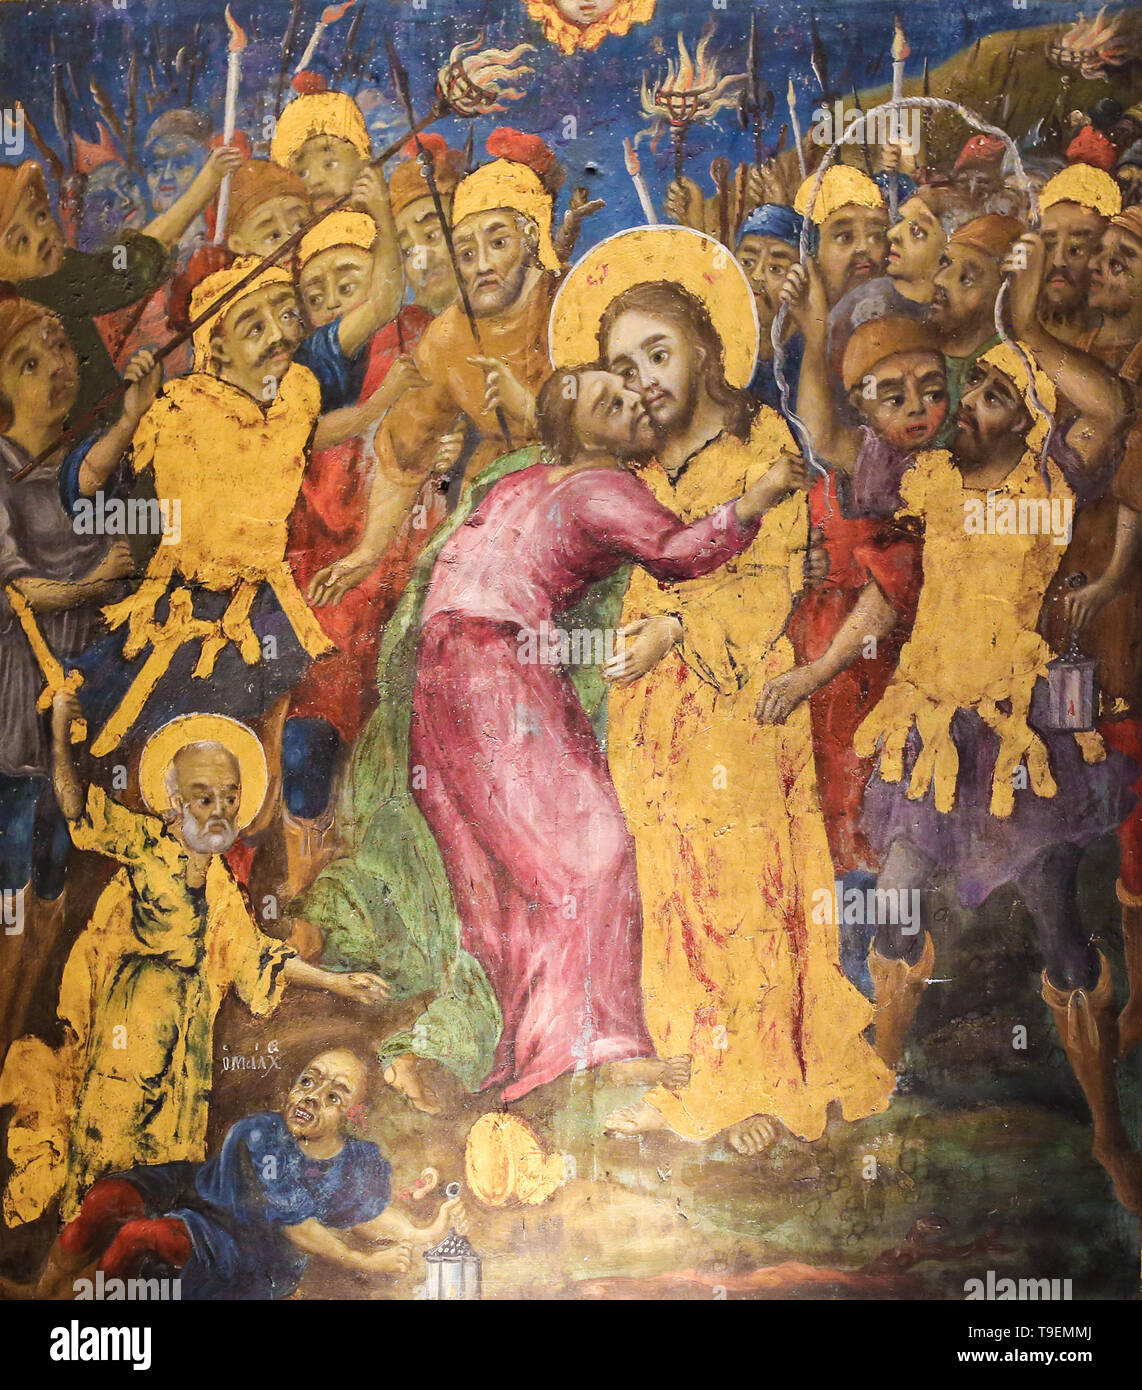 Greek Orthodox Fresco in the Church of the Holy Sepulchre in Jerusalem, depicting Judas Iscariot betraying Jesus with a kiss Stock Photo